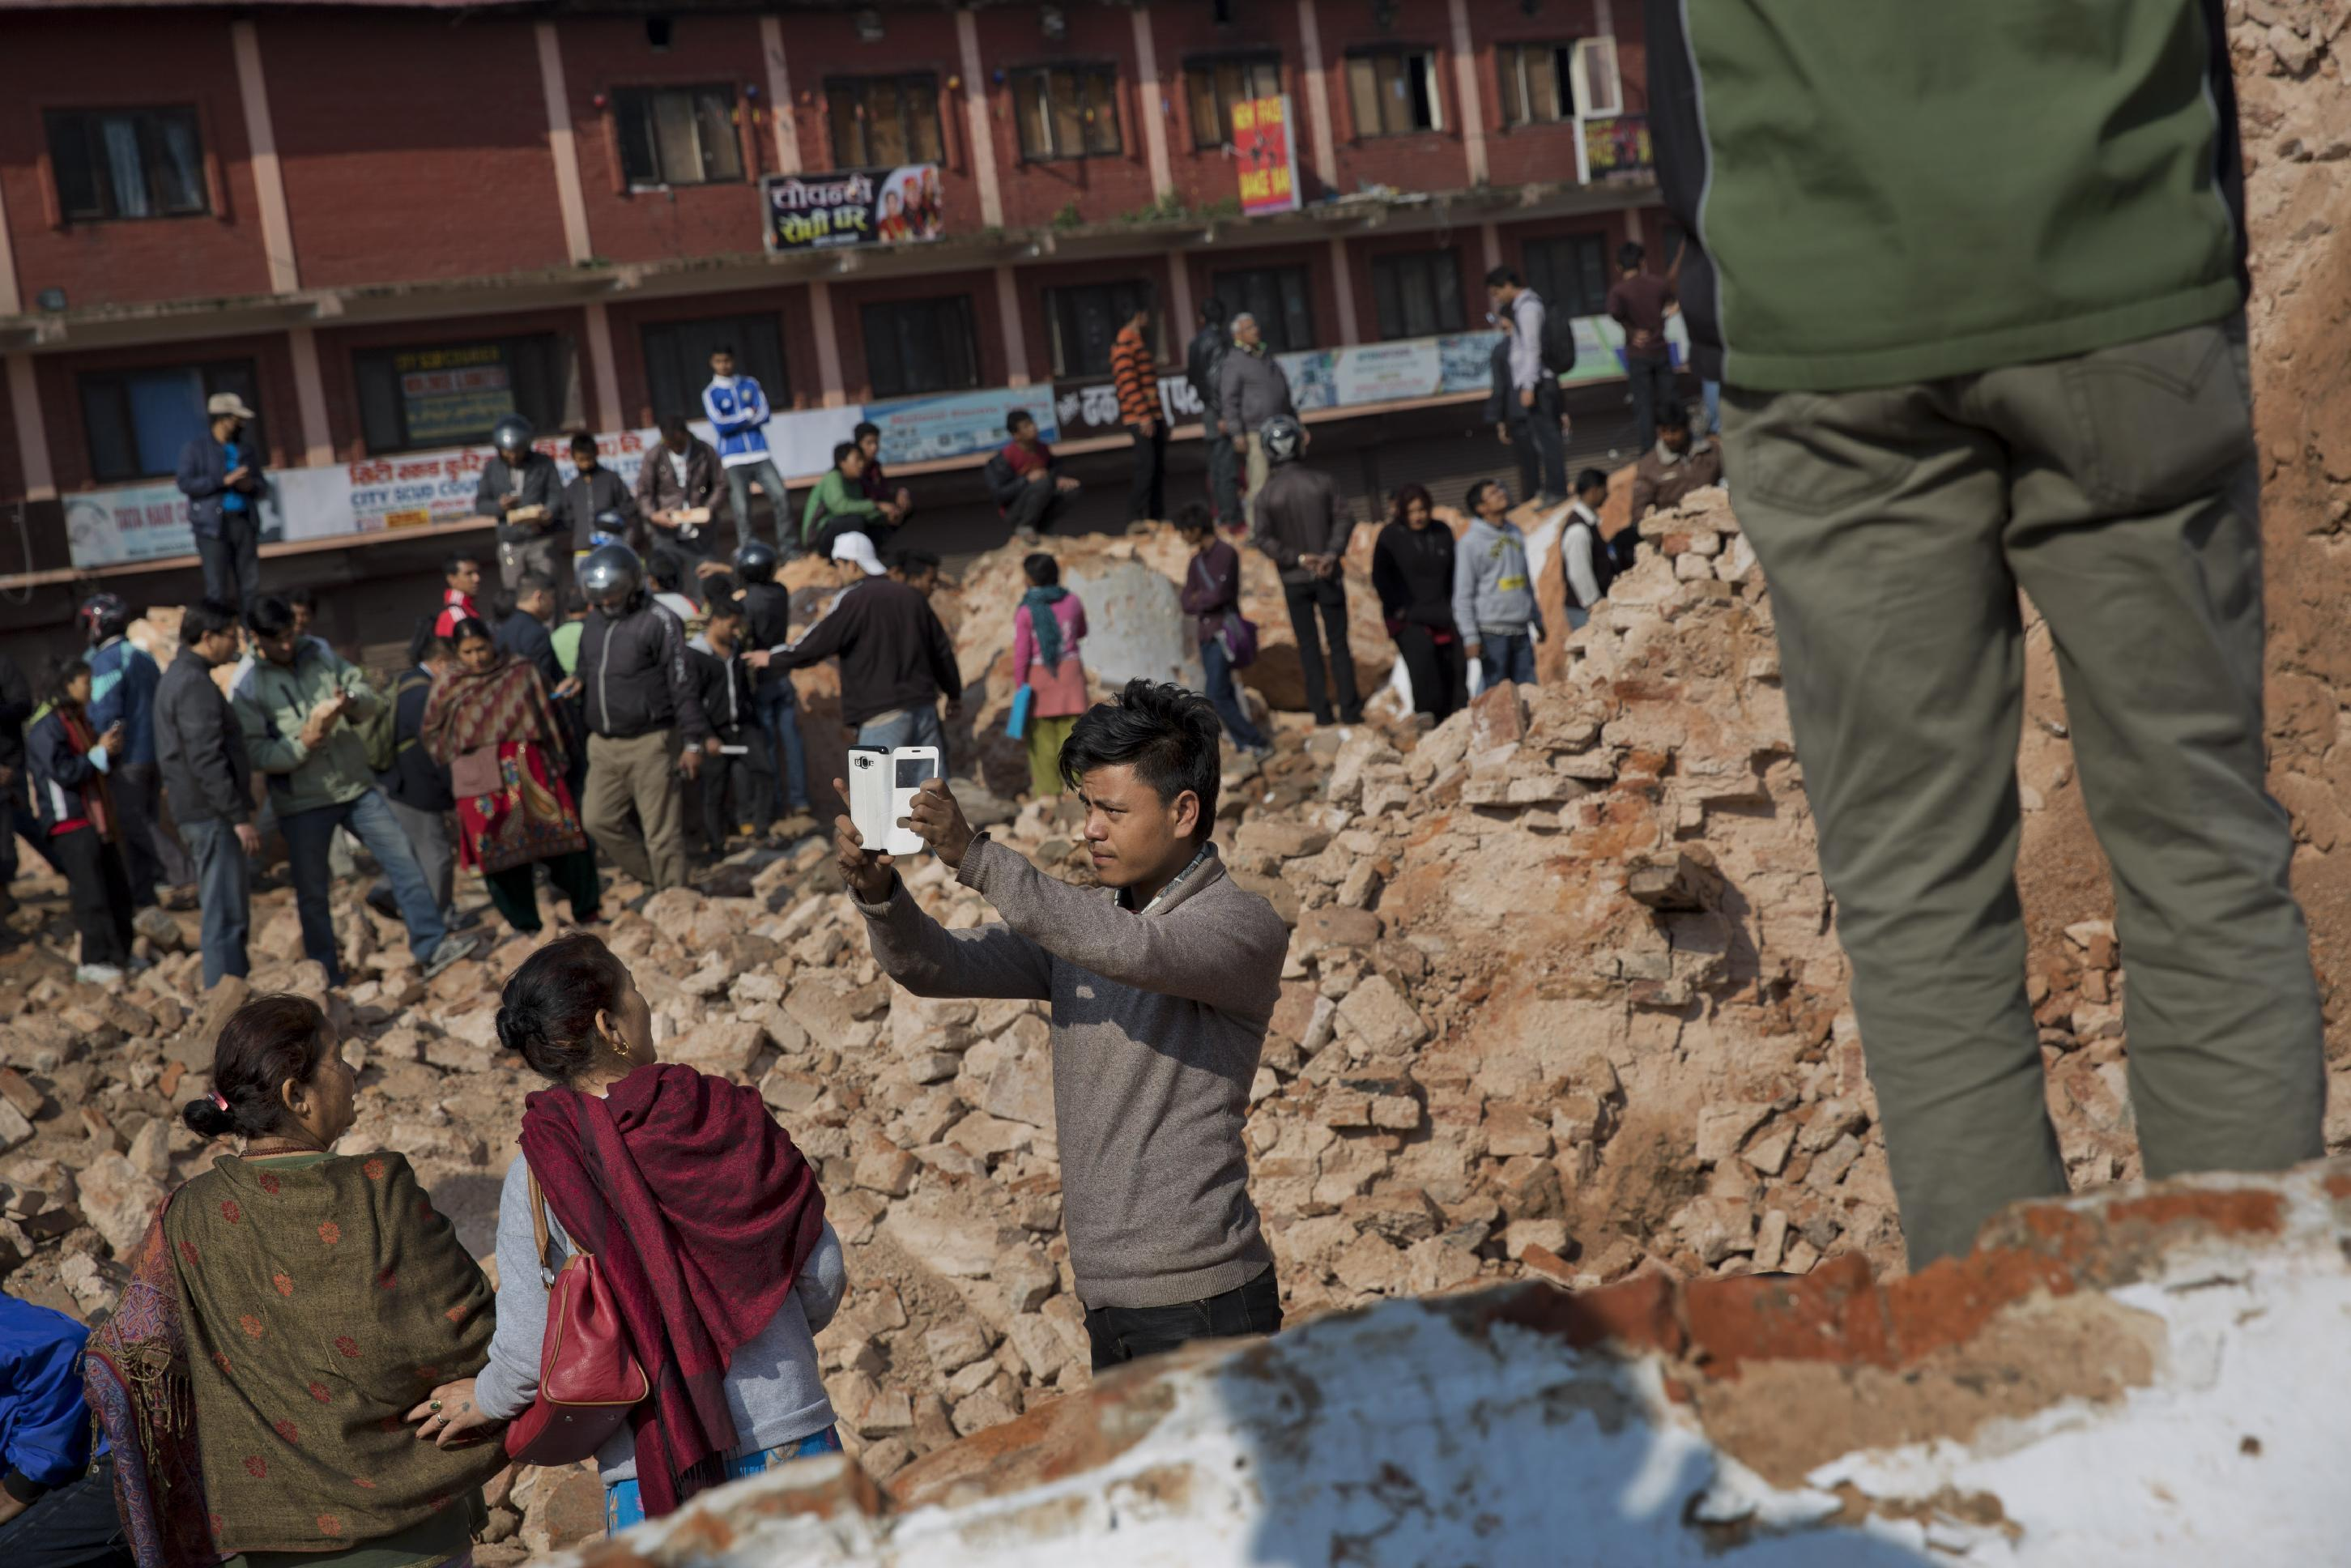 The Latest on Nepal Quake: Death toll rises to 3,617